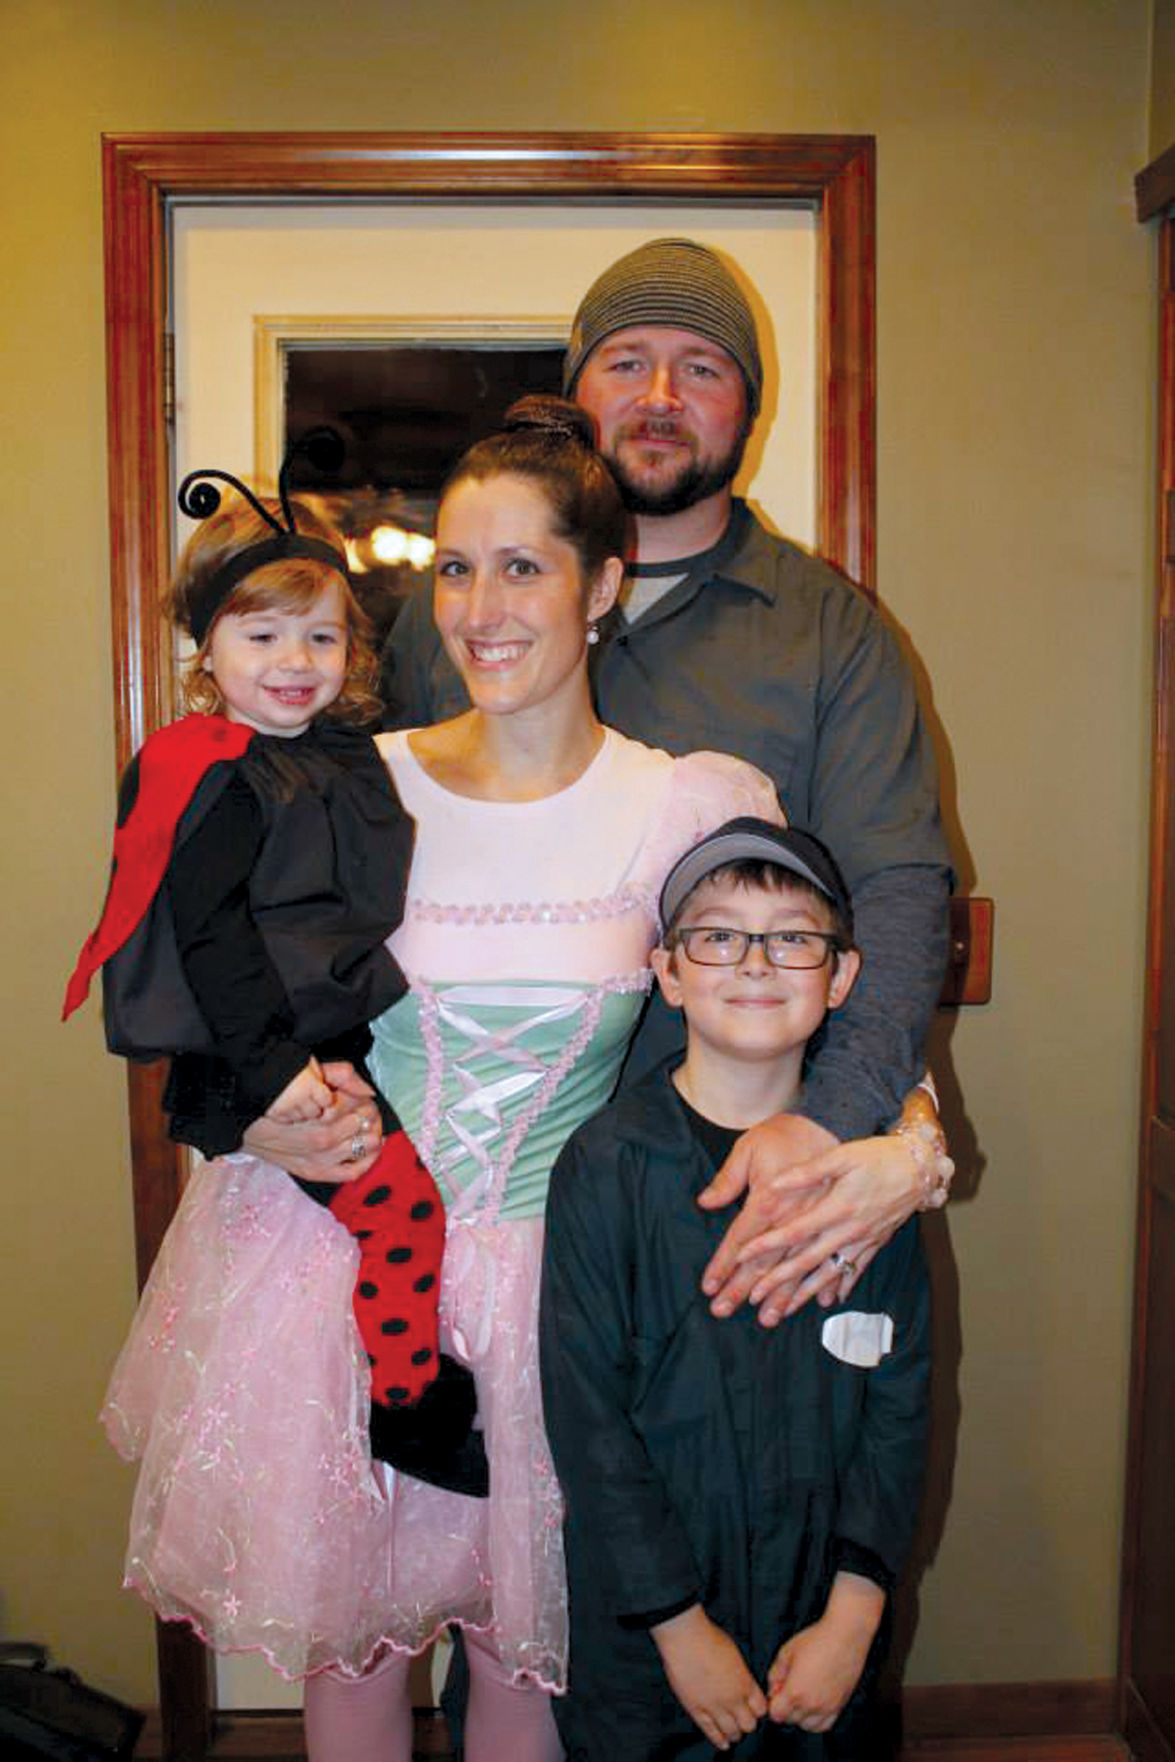 The White family, Shawn, Amy, Corey, and Ava, 2, celebrates Corey's birthday on Feb. 28 on non Leap Years.